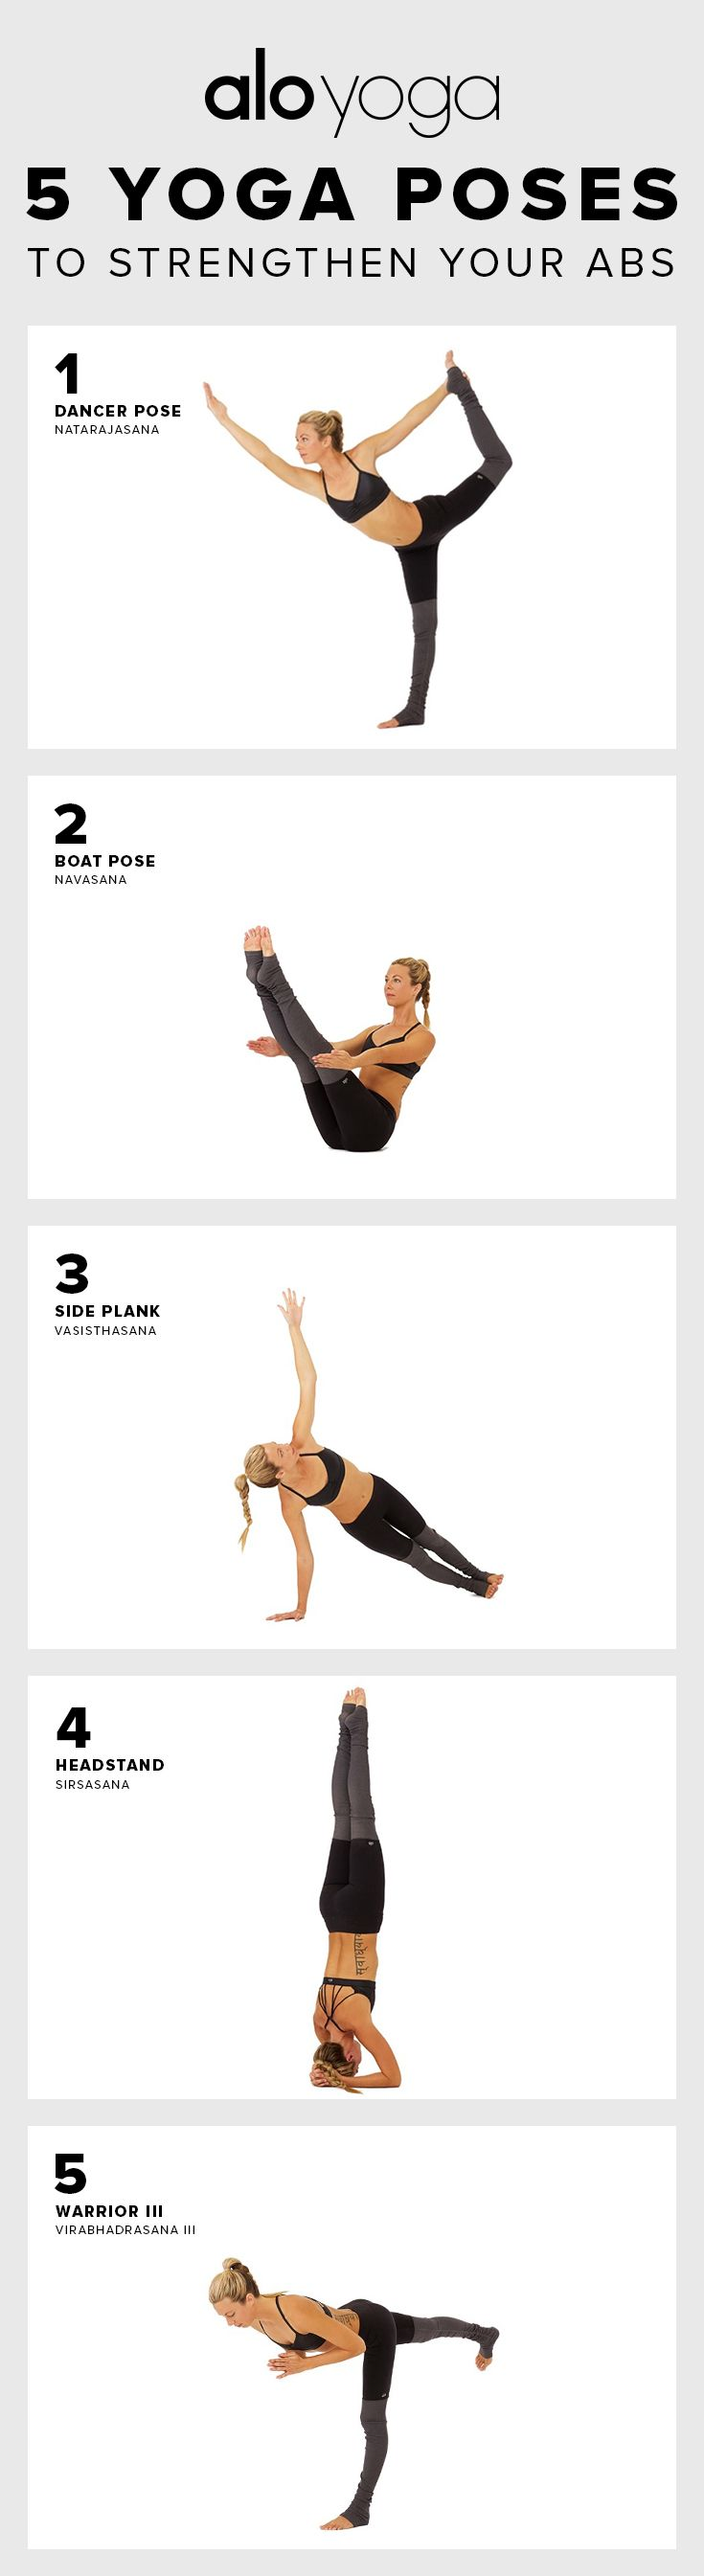 5 #Yoga Poses to help strengthen your #abs #aloyoga #fitness